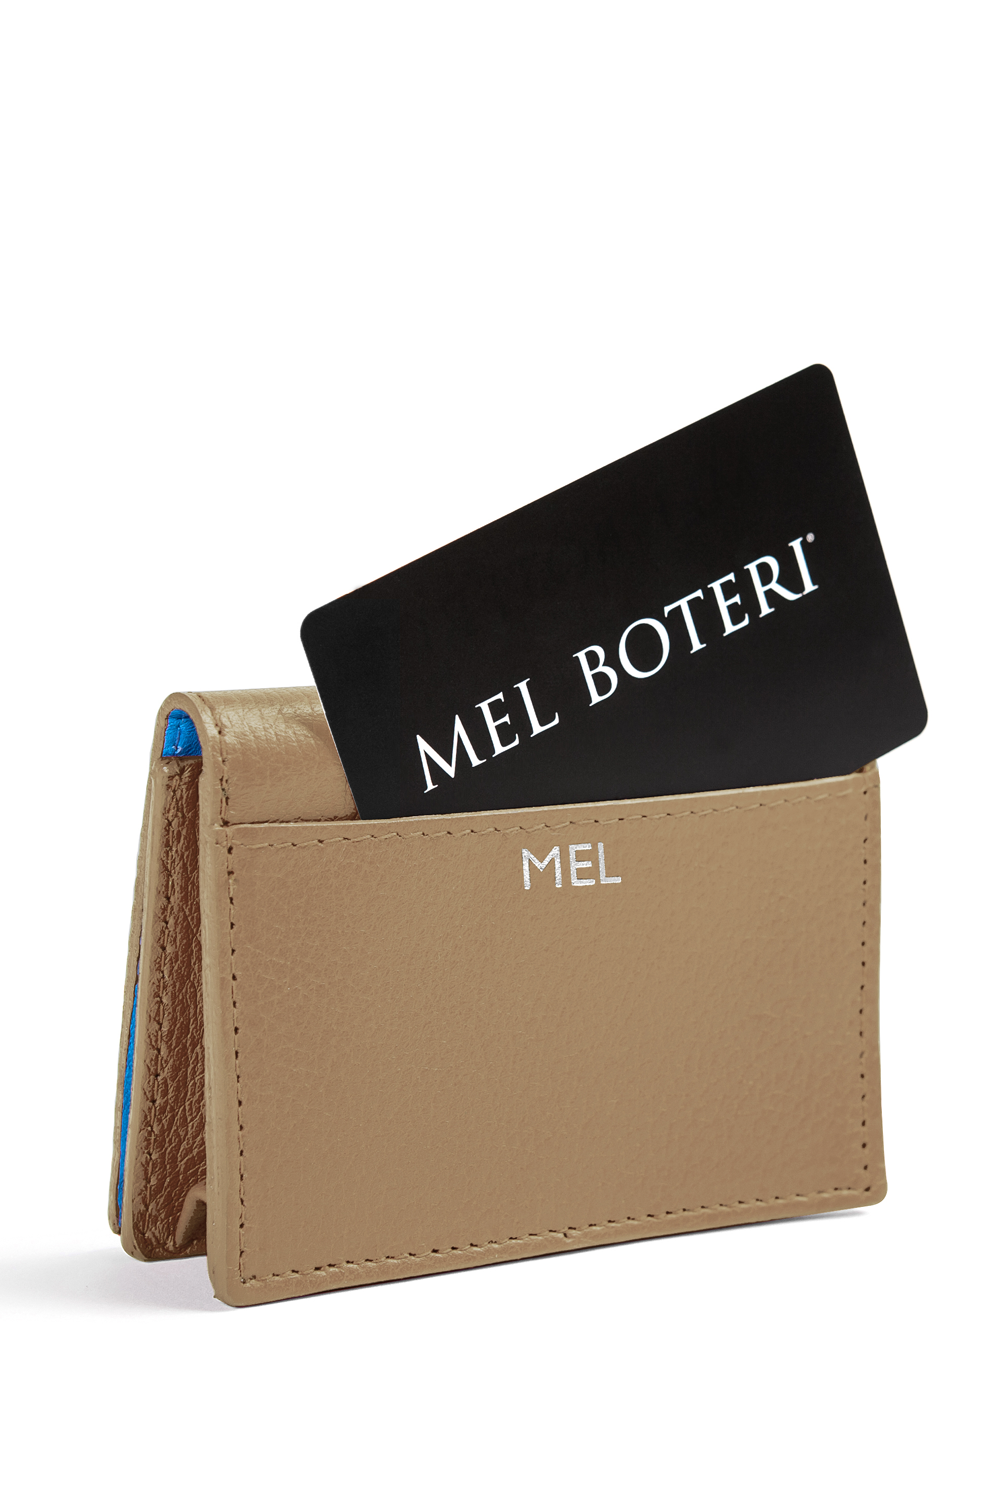 The Mel Boteri Leather Card Holder | Biscotti Leather With Silver Monogram | Mel Boteri Gift Ideas | Design Your Own